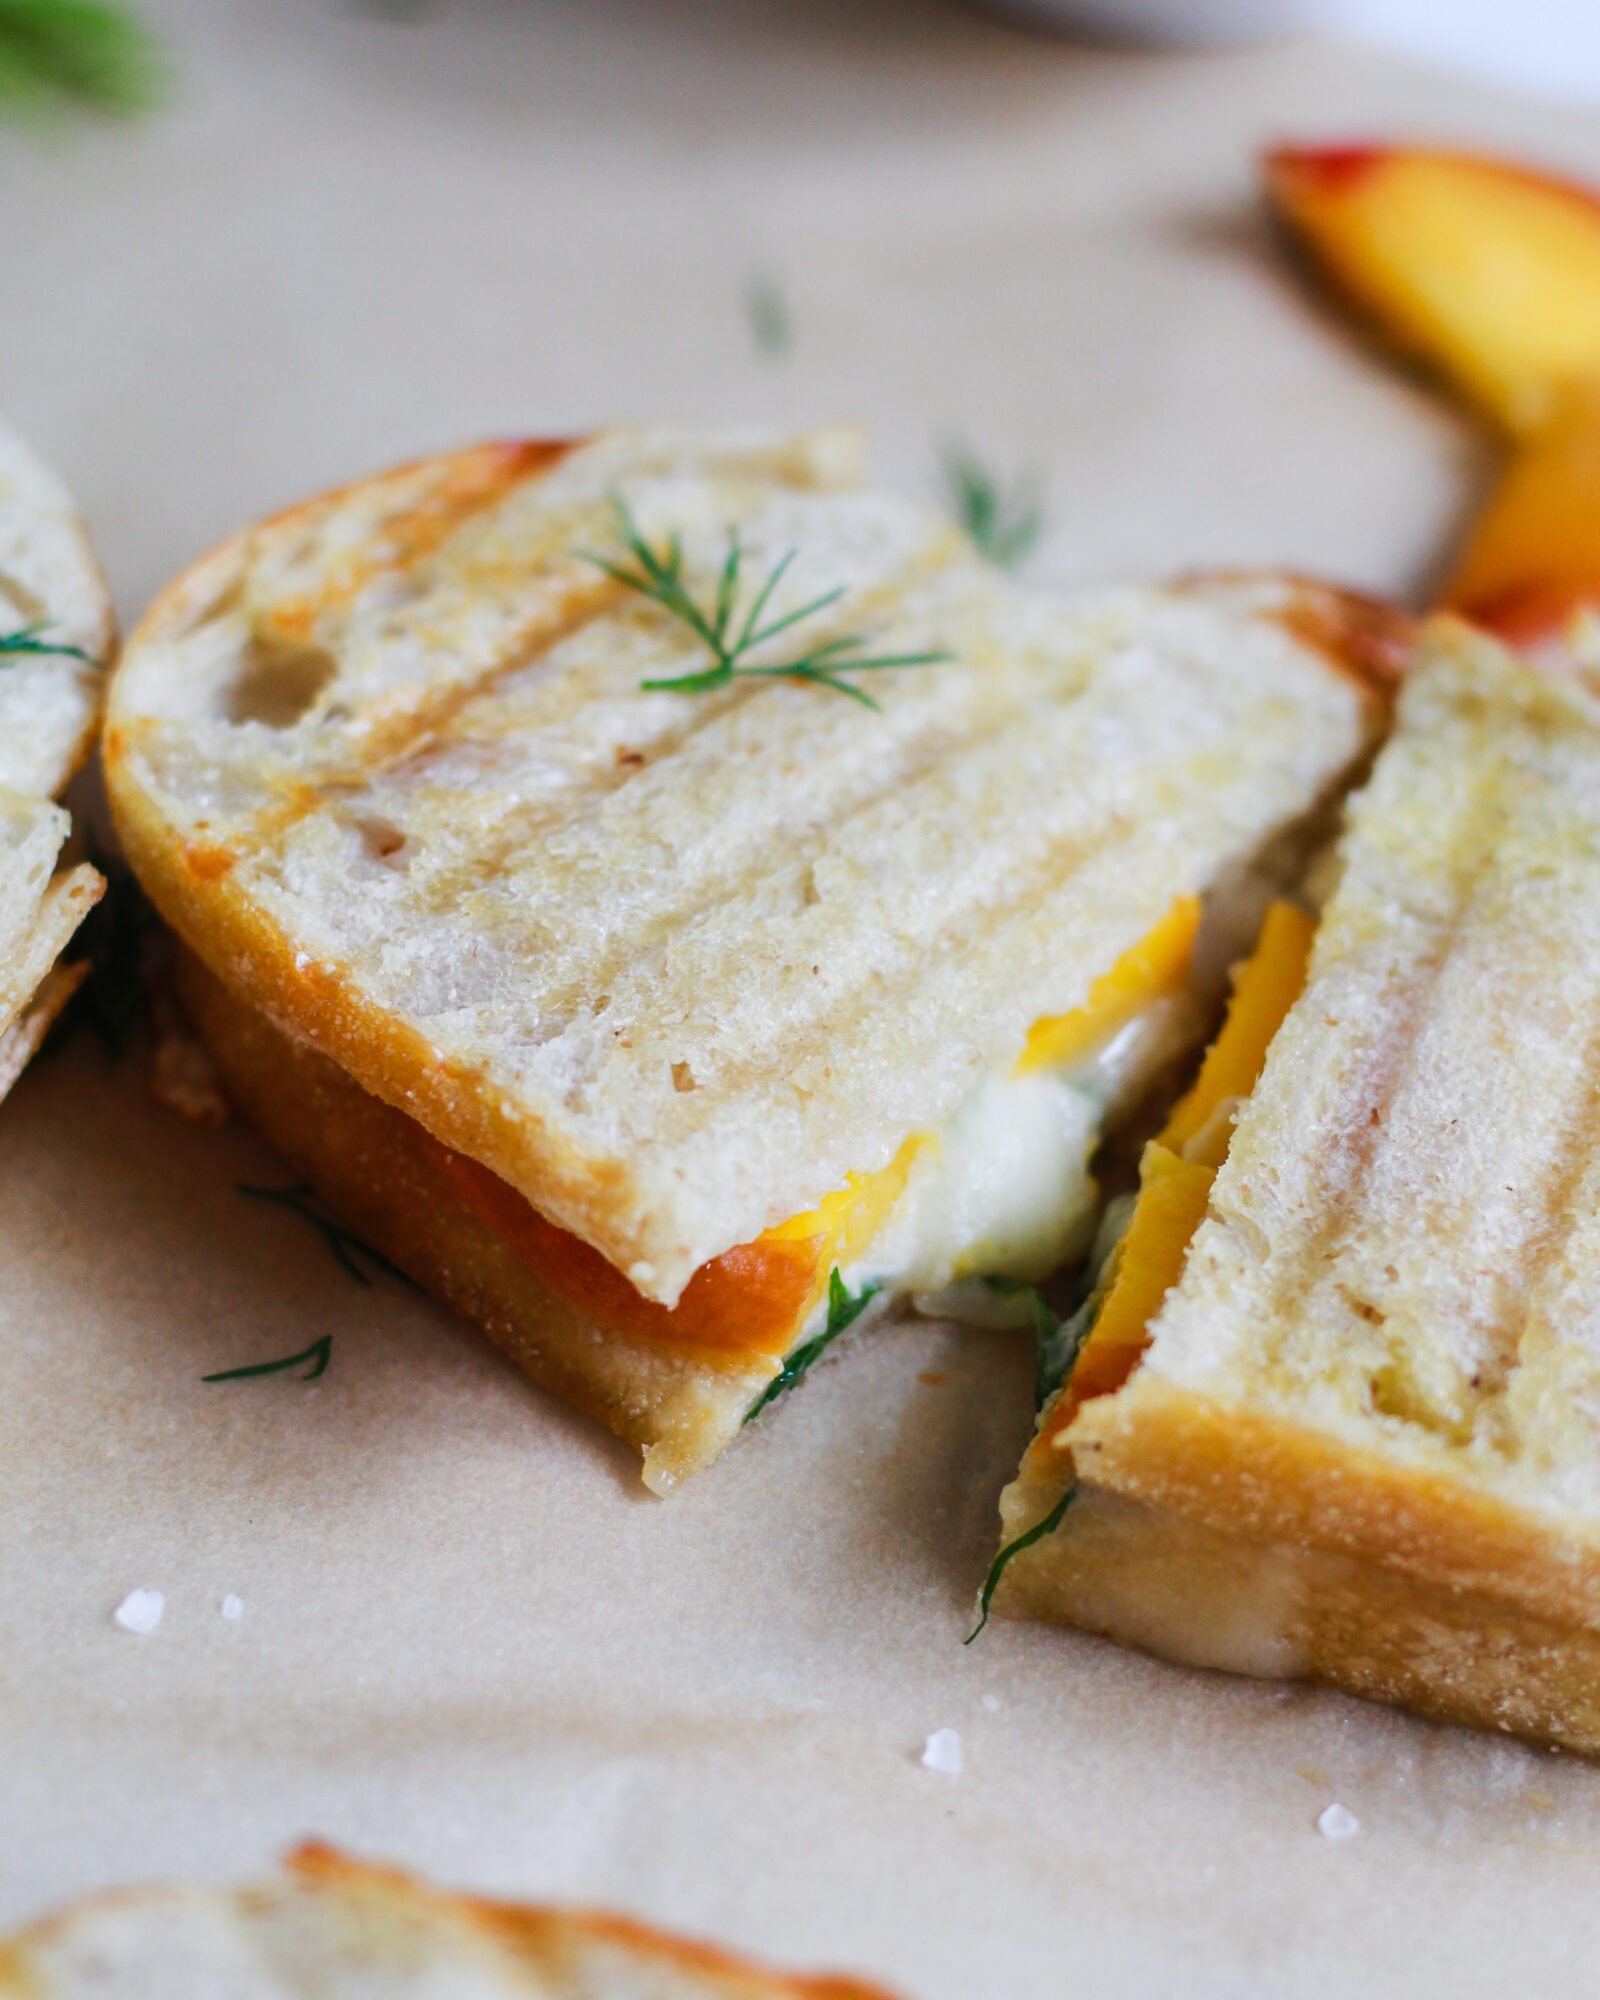 grilled cheese pulled apart